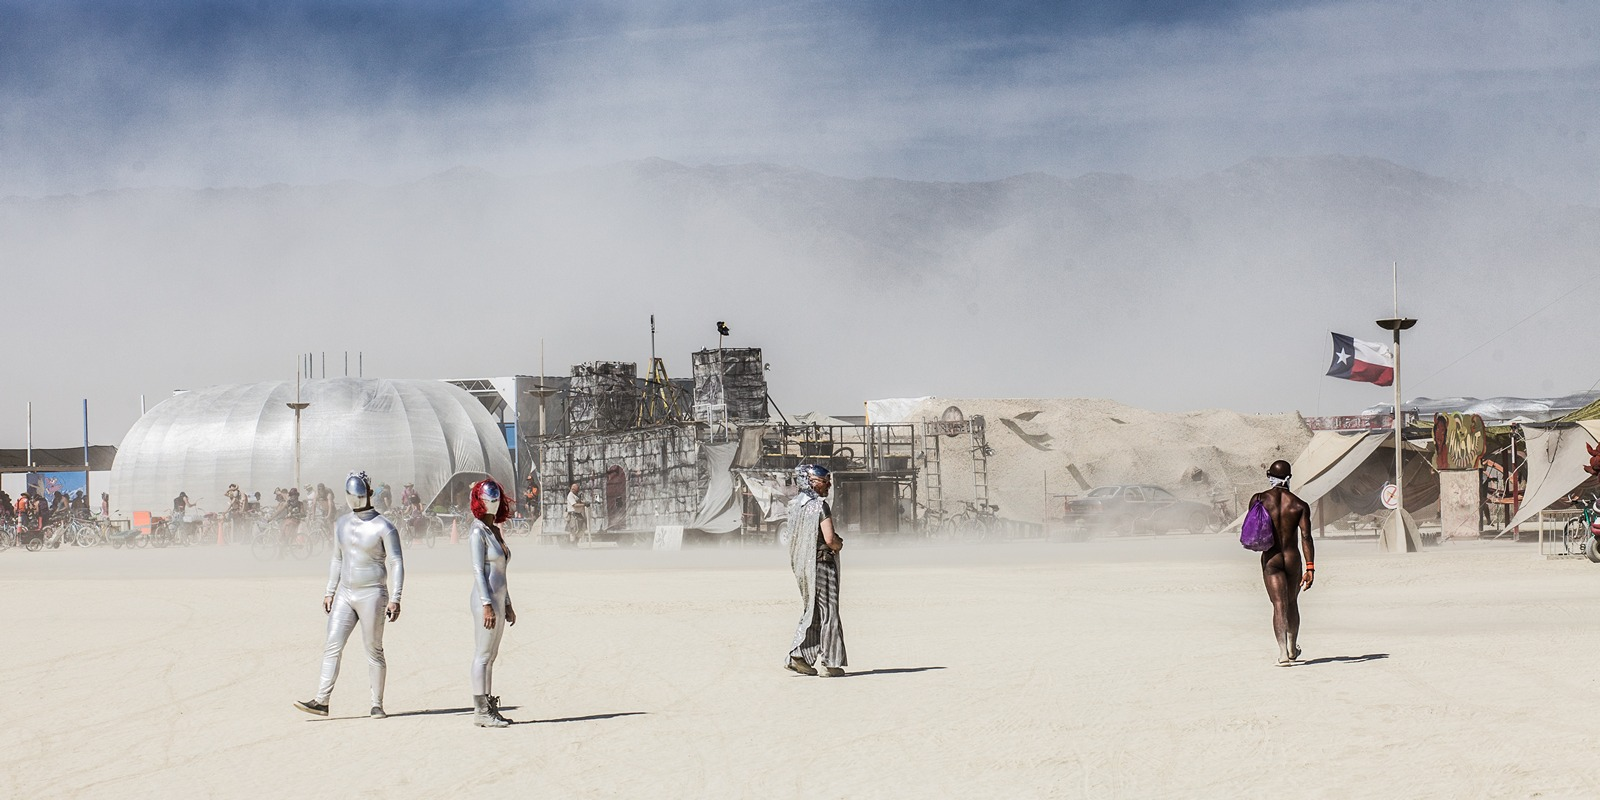 Burning Man - Another planet